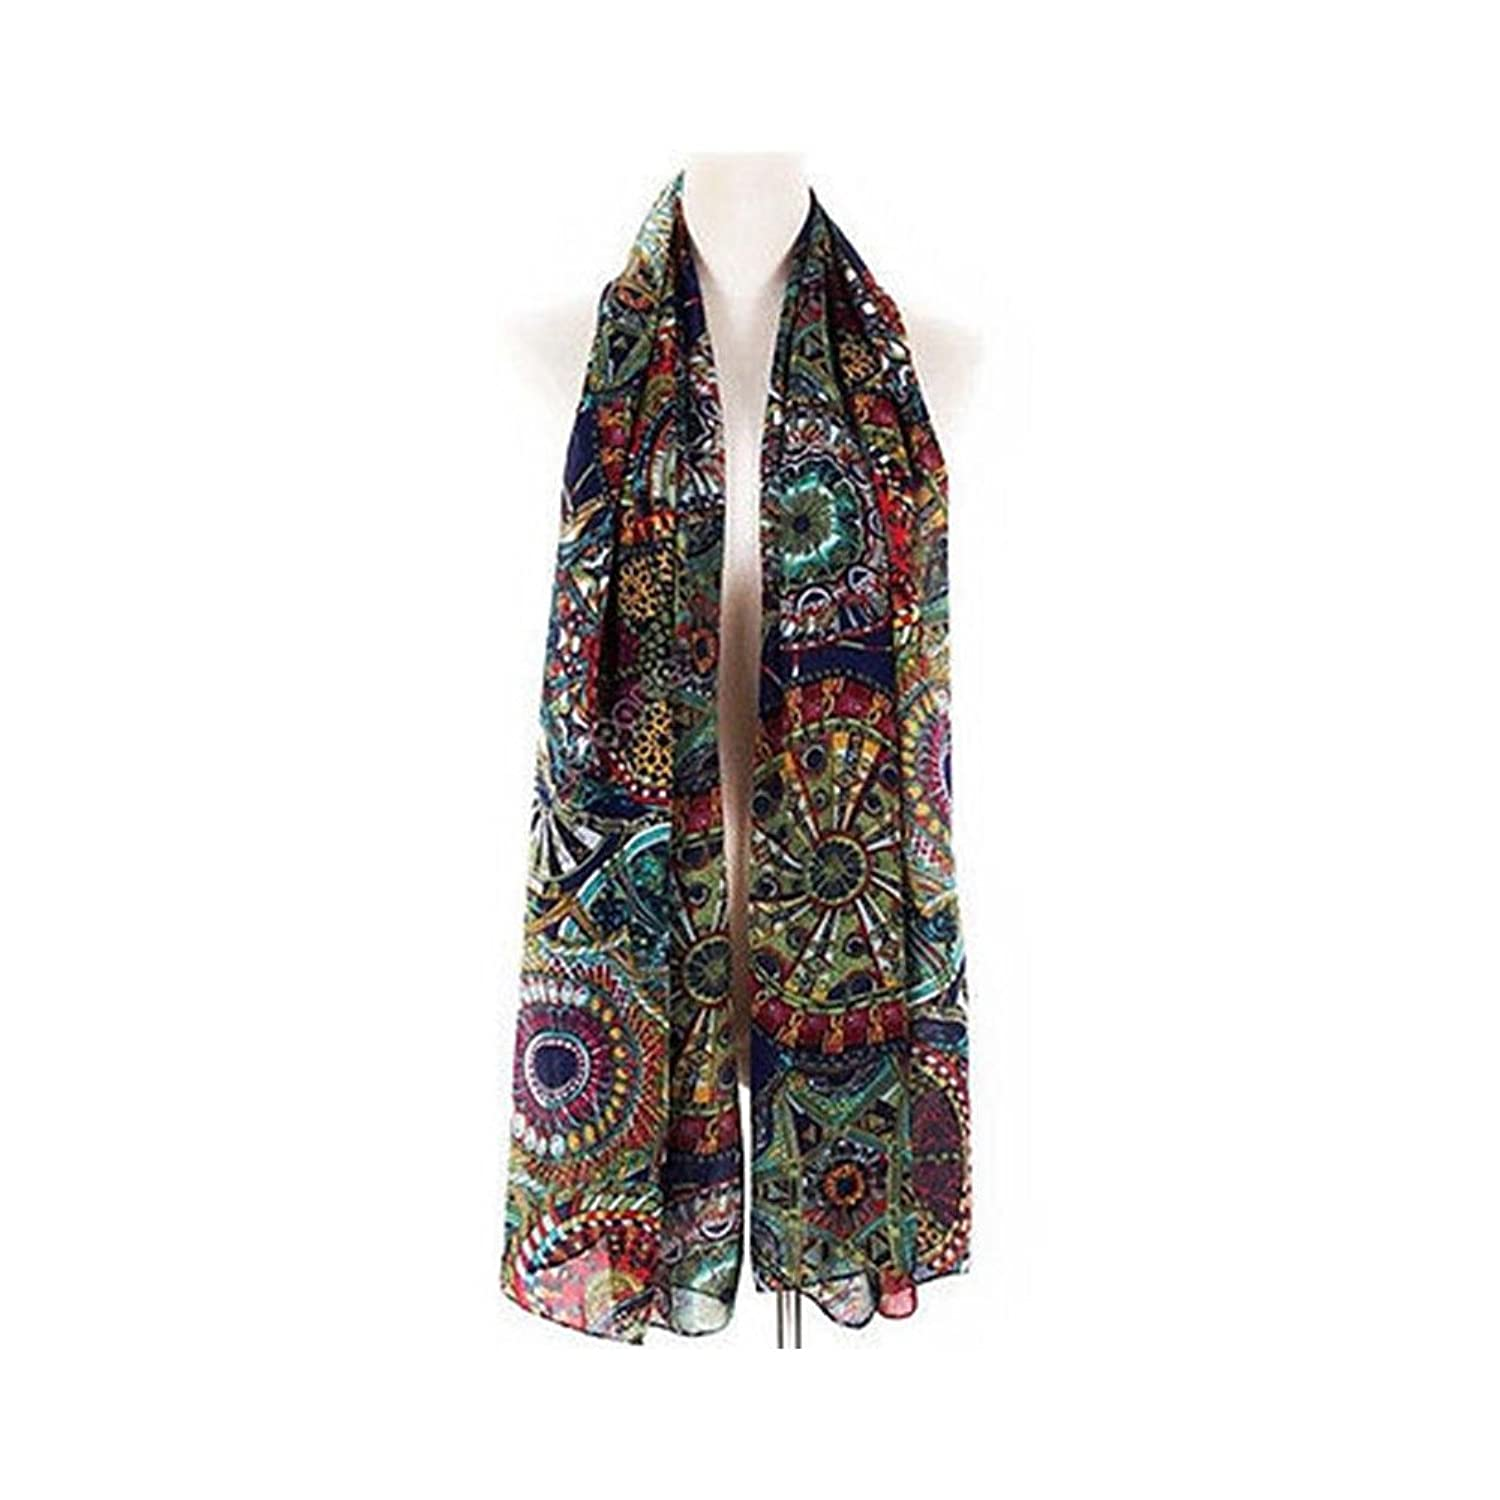 Blue Fashion Women's Girl Chiffon Print Silk Long Soft Neck Scarf Shawl Scarves Wraps